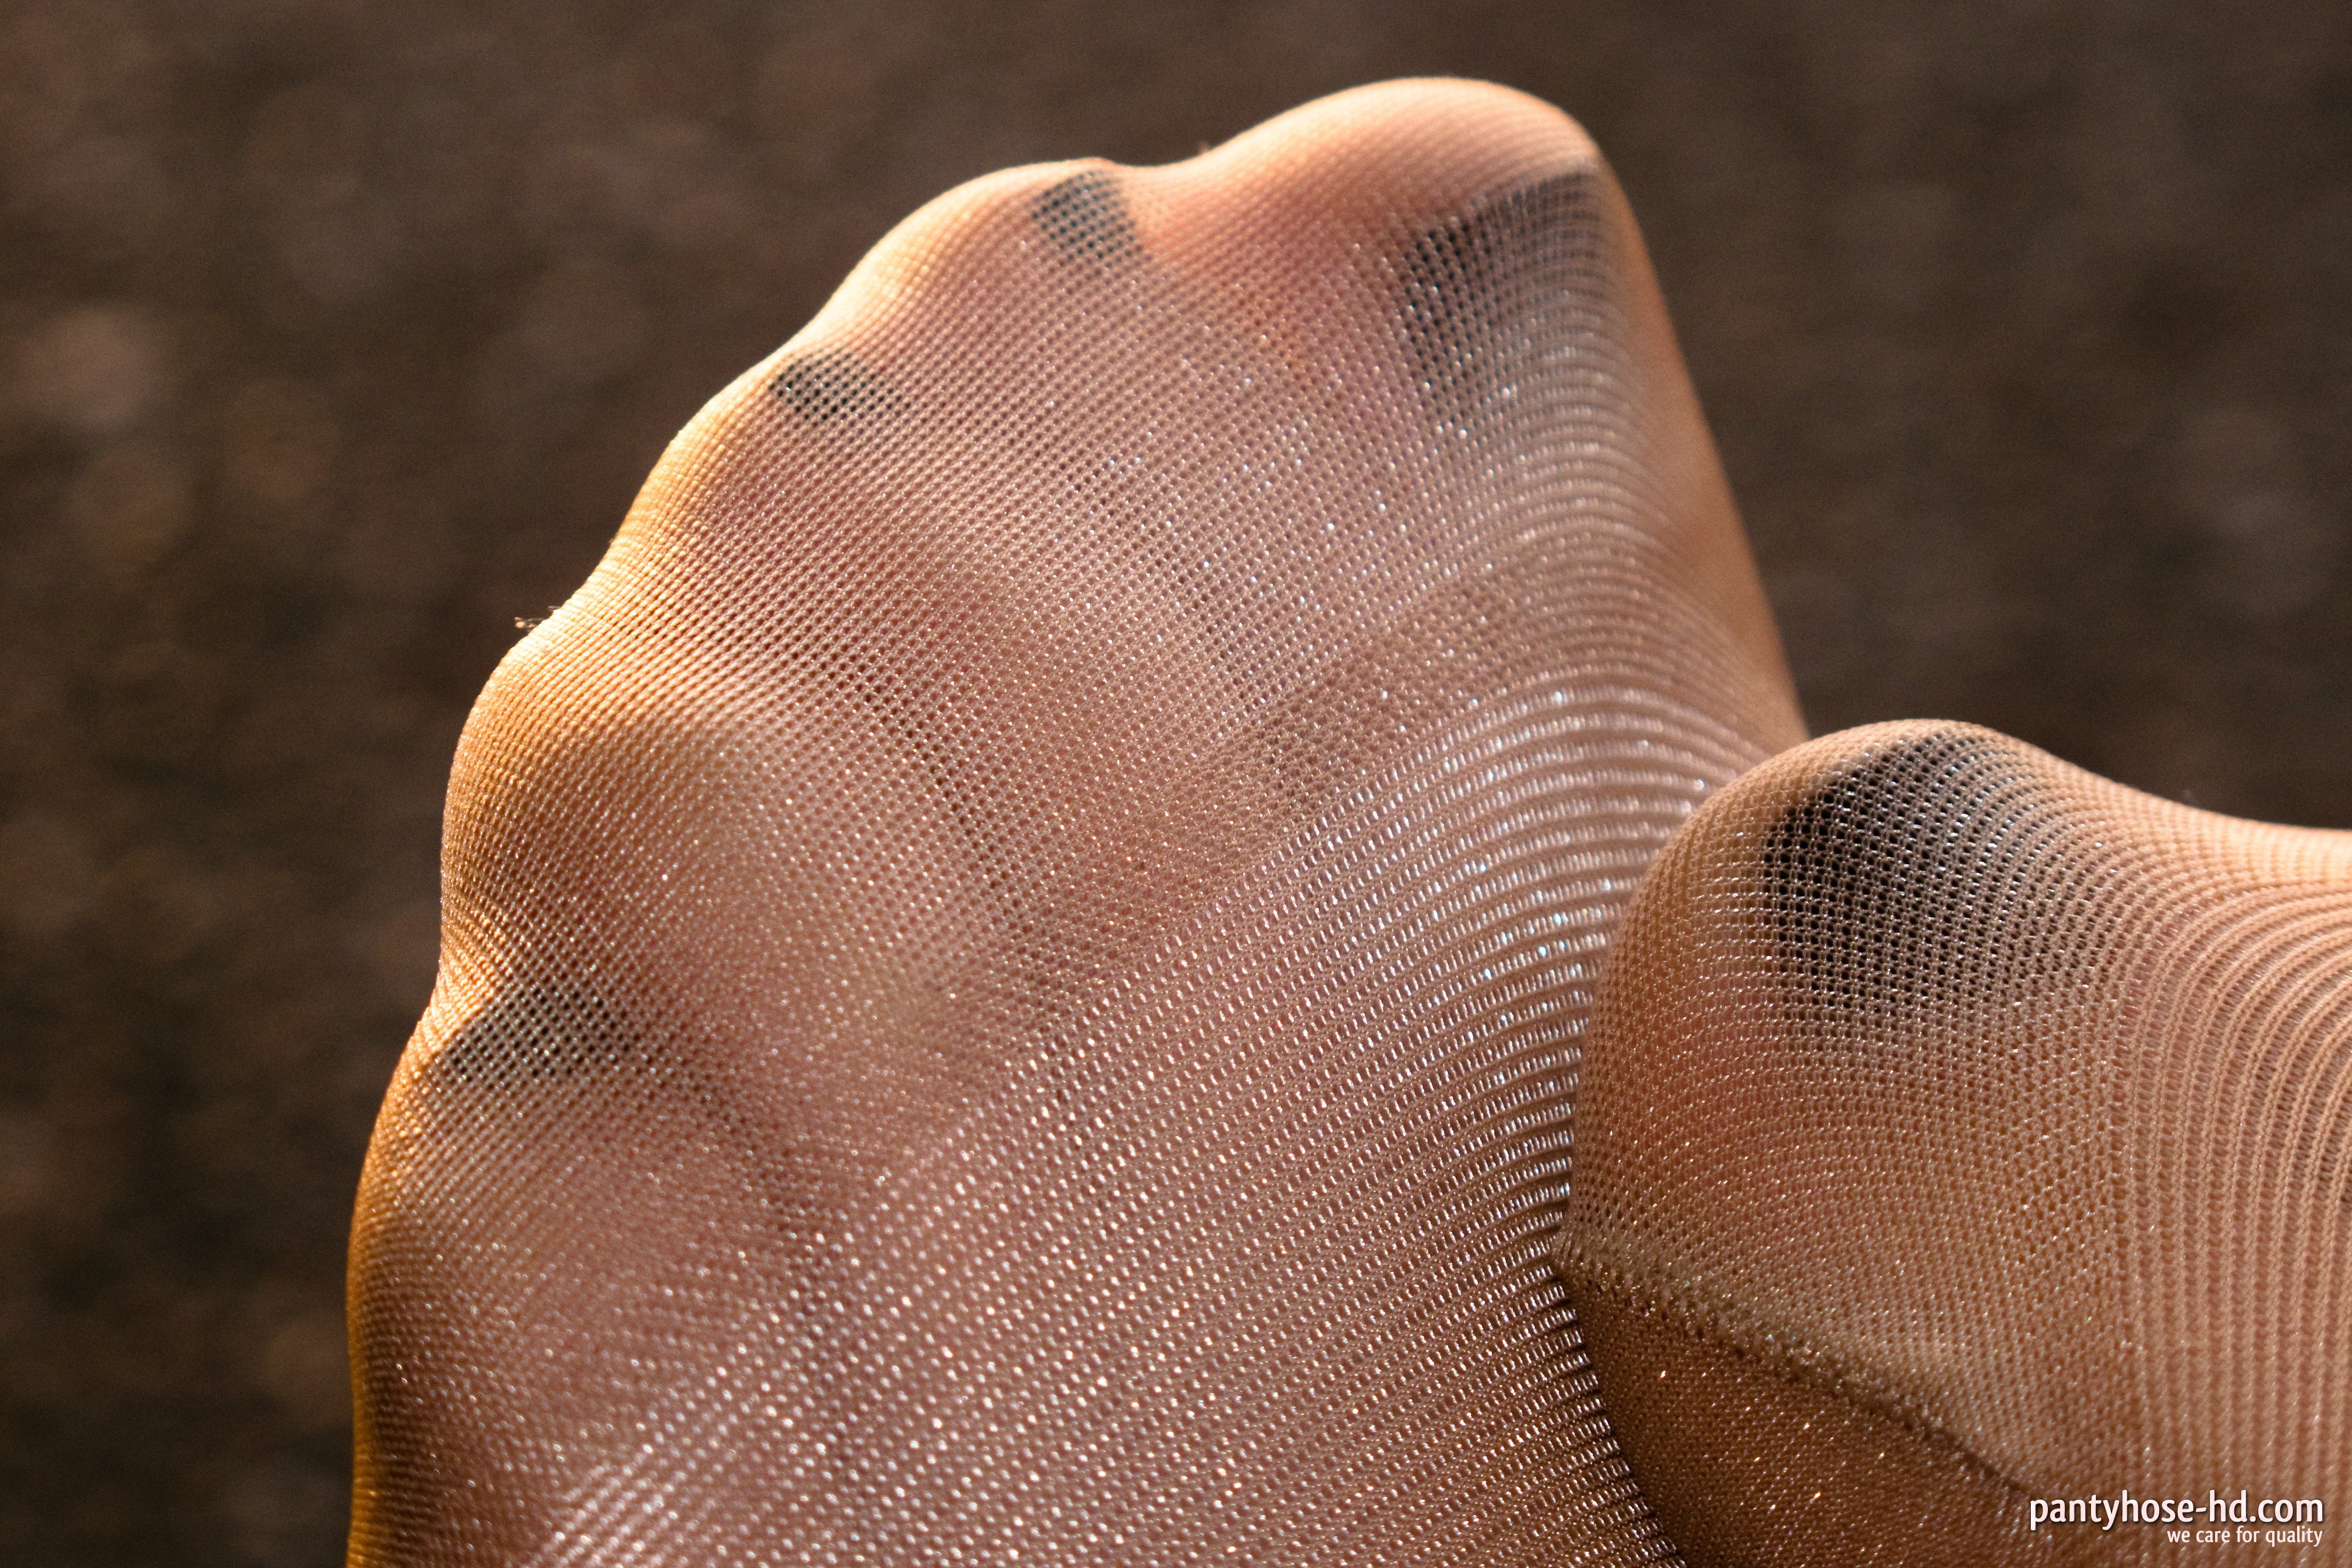 Sexy pantyhose feet close up consider, that